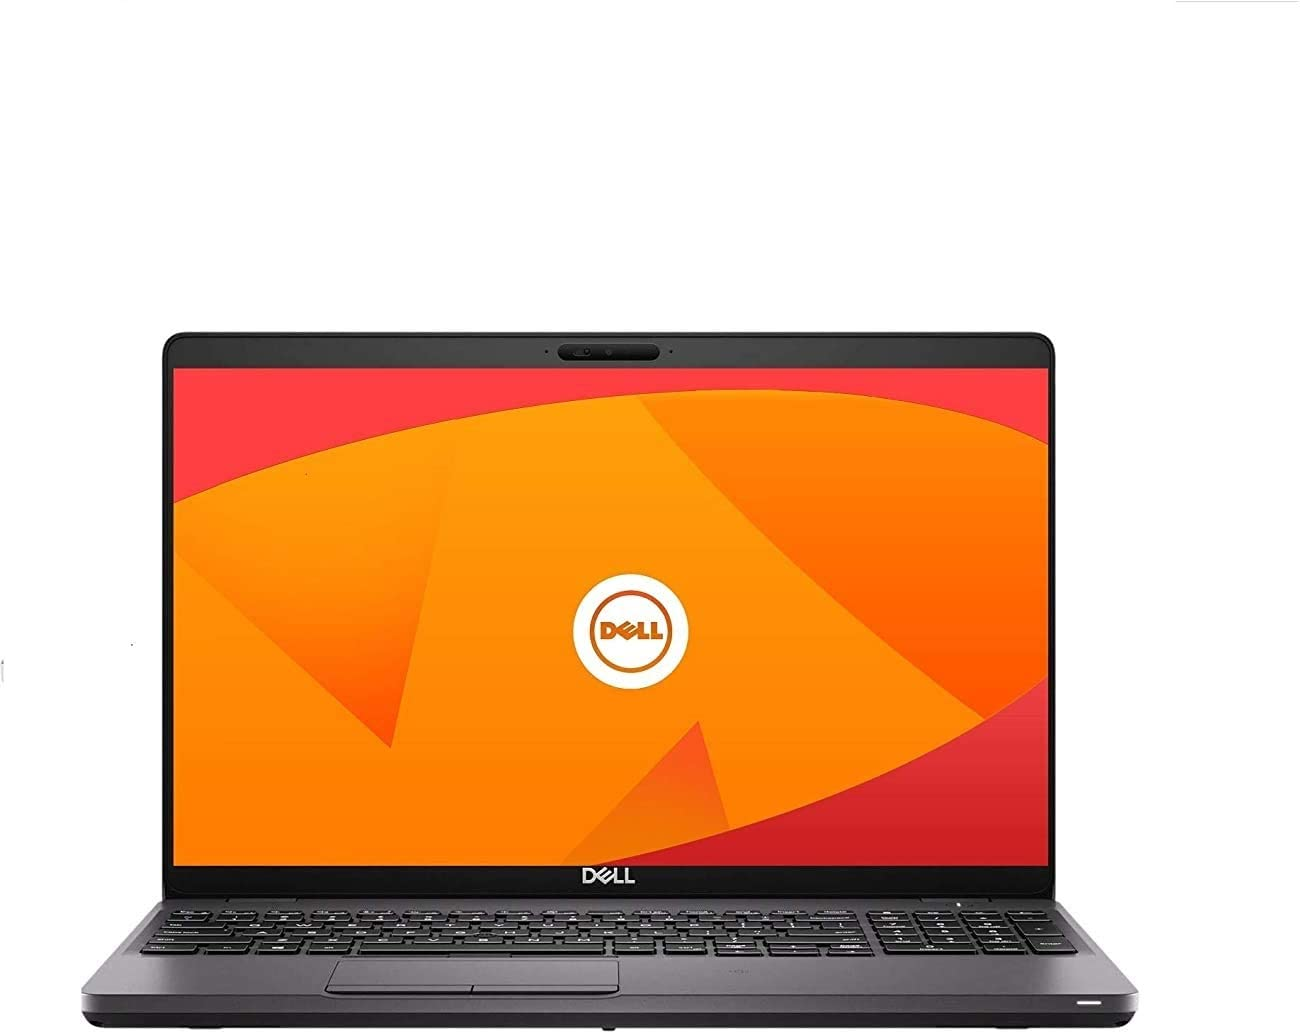 "2020 Dell Latitude 5000 5500 15.6"" Full HD FHD (1920x1080) Business Laptop (Intel Quad-Core i7-8665U, 64GB RAM, 2TB PCIe SSD) Backlit, Fingeprint, Type-C, HDMI, Webcam, Windows 10 Pro + IST HDMI Cable"